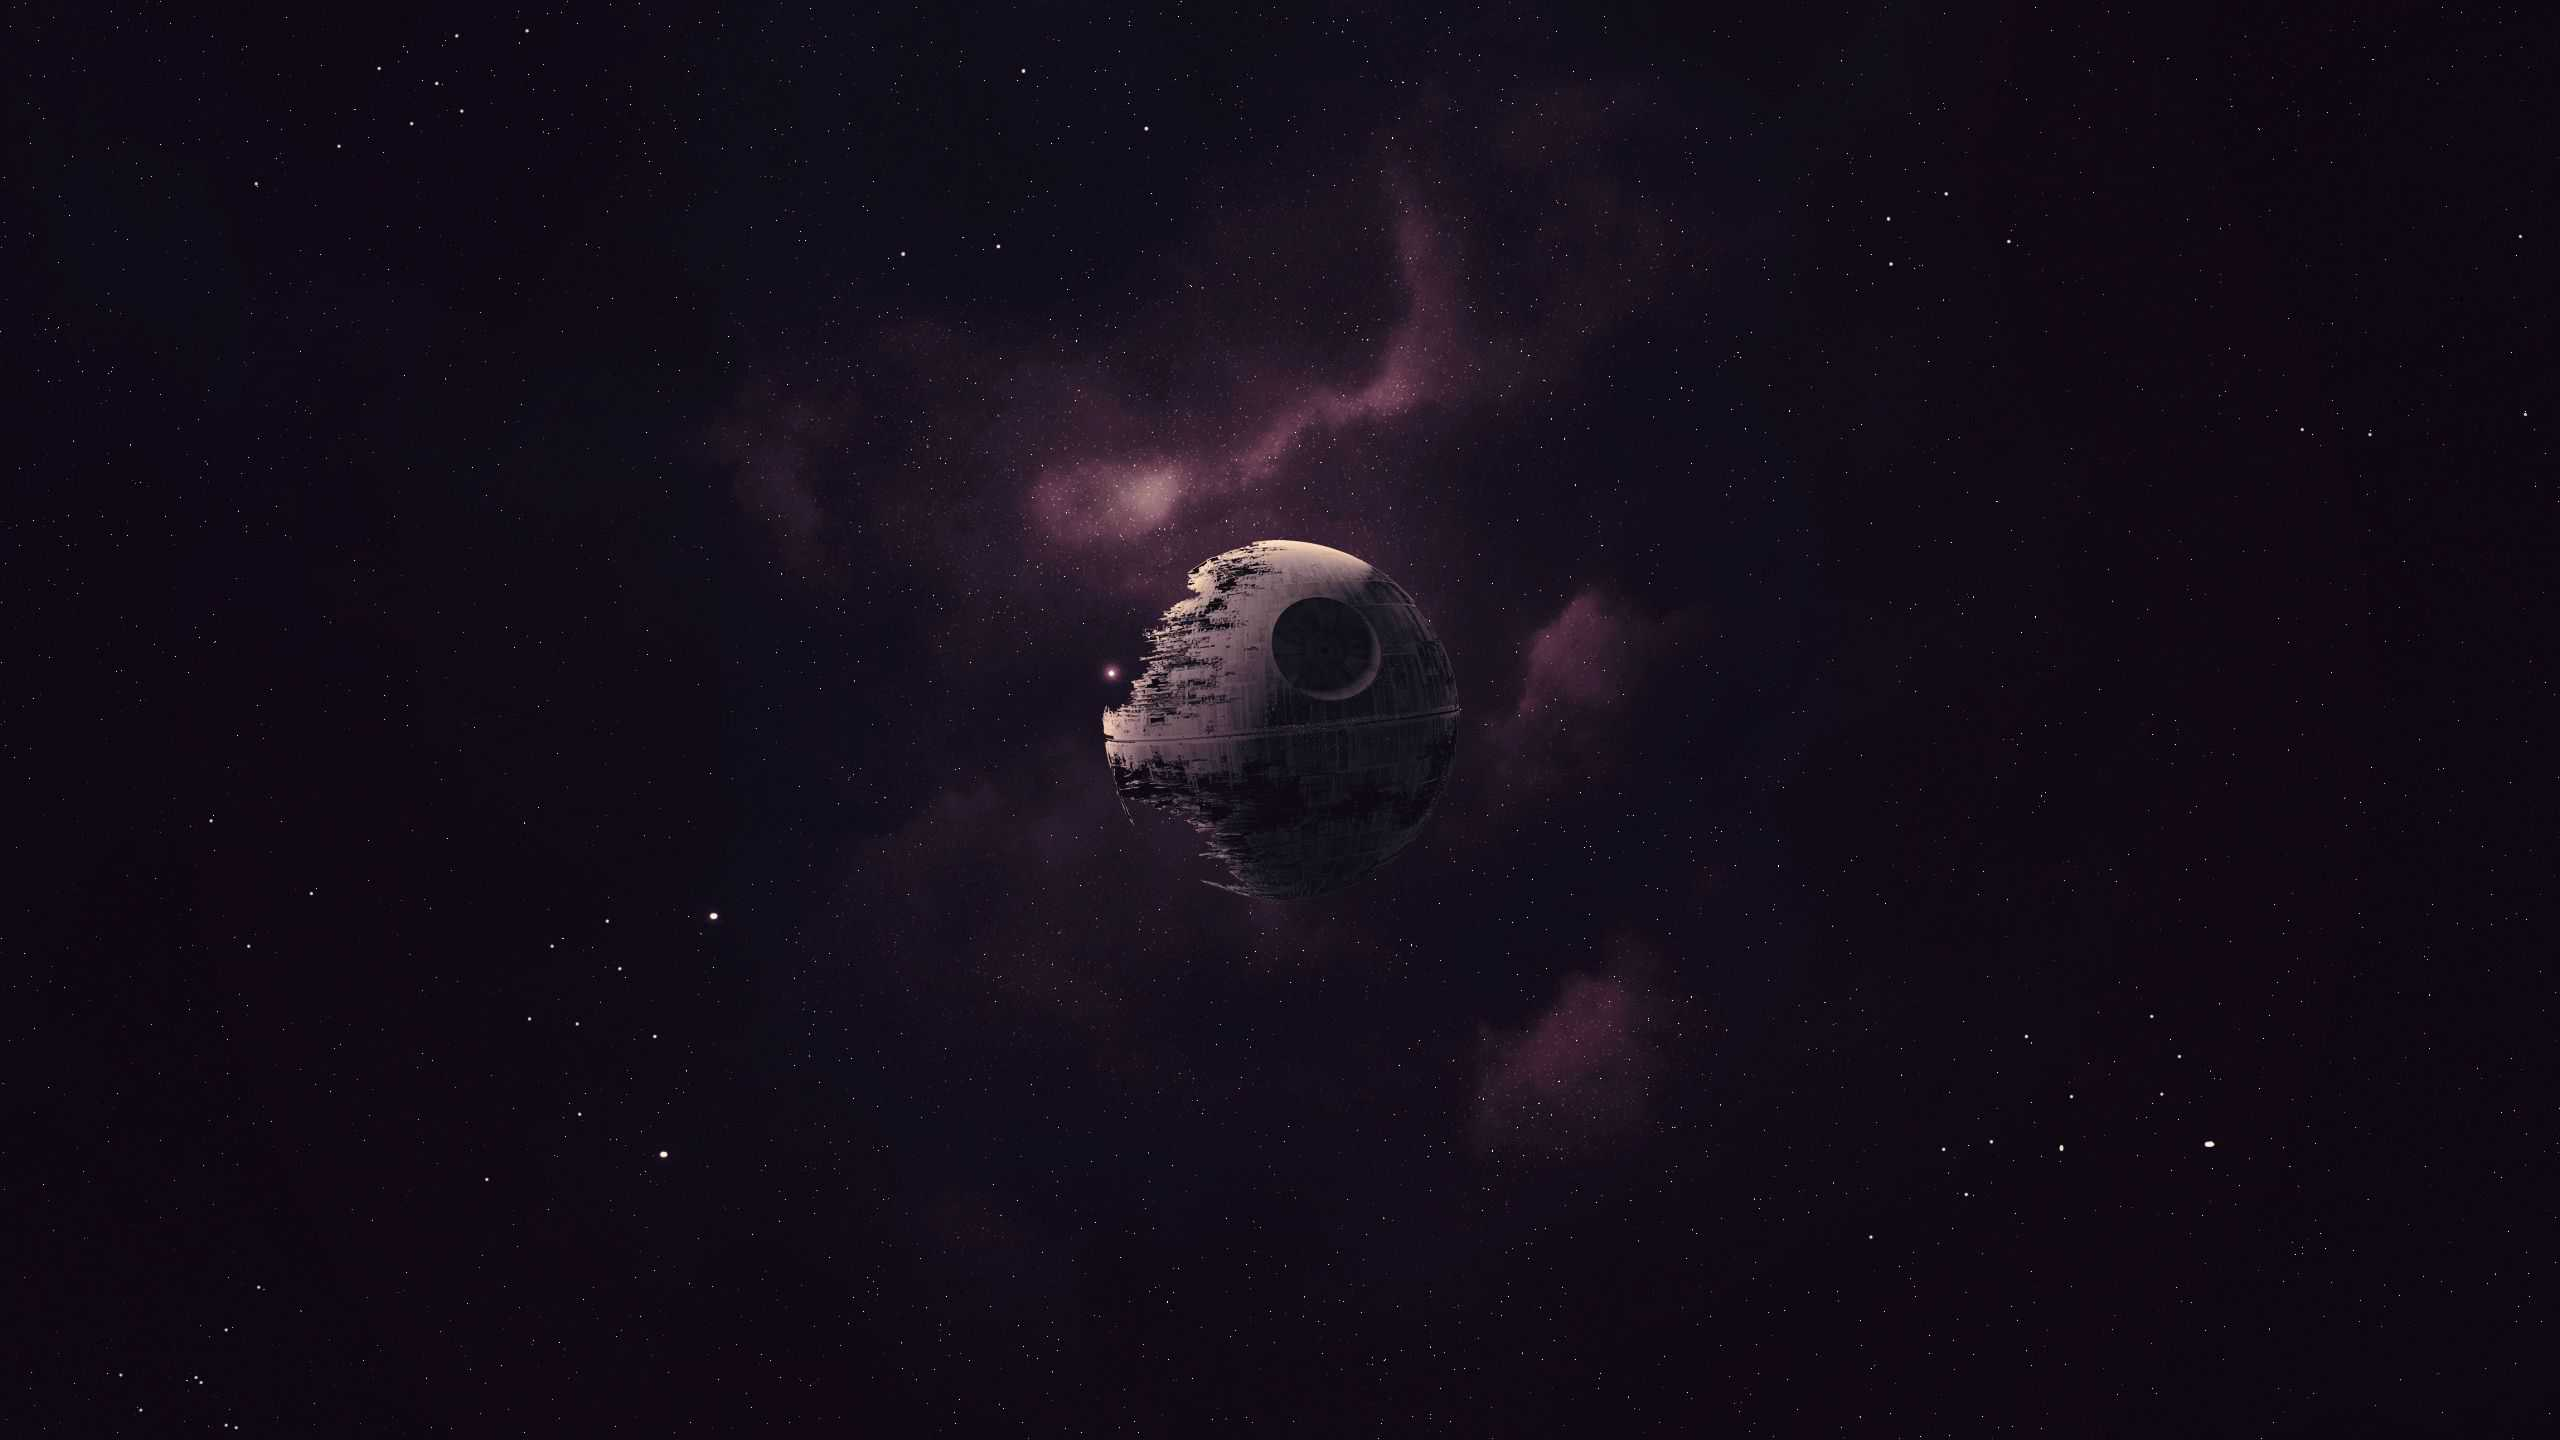 Star Wars Death Star Wqhd 1440p Wallpaper Pixelz